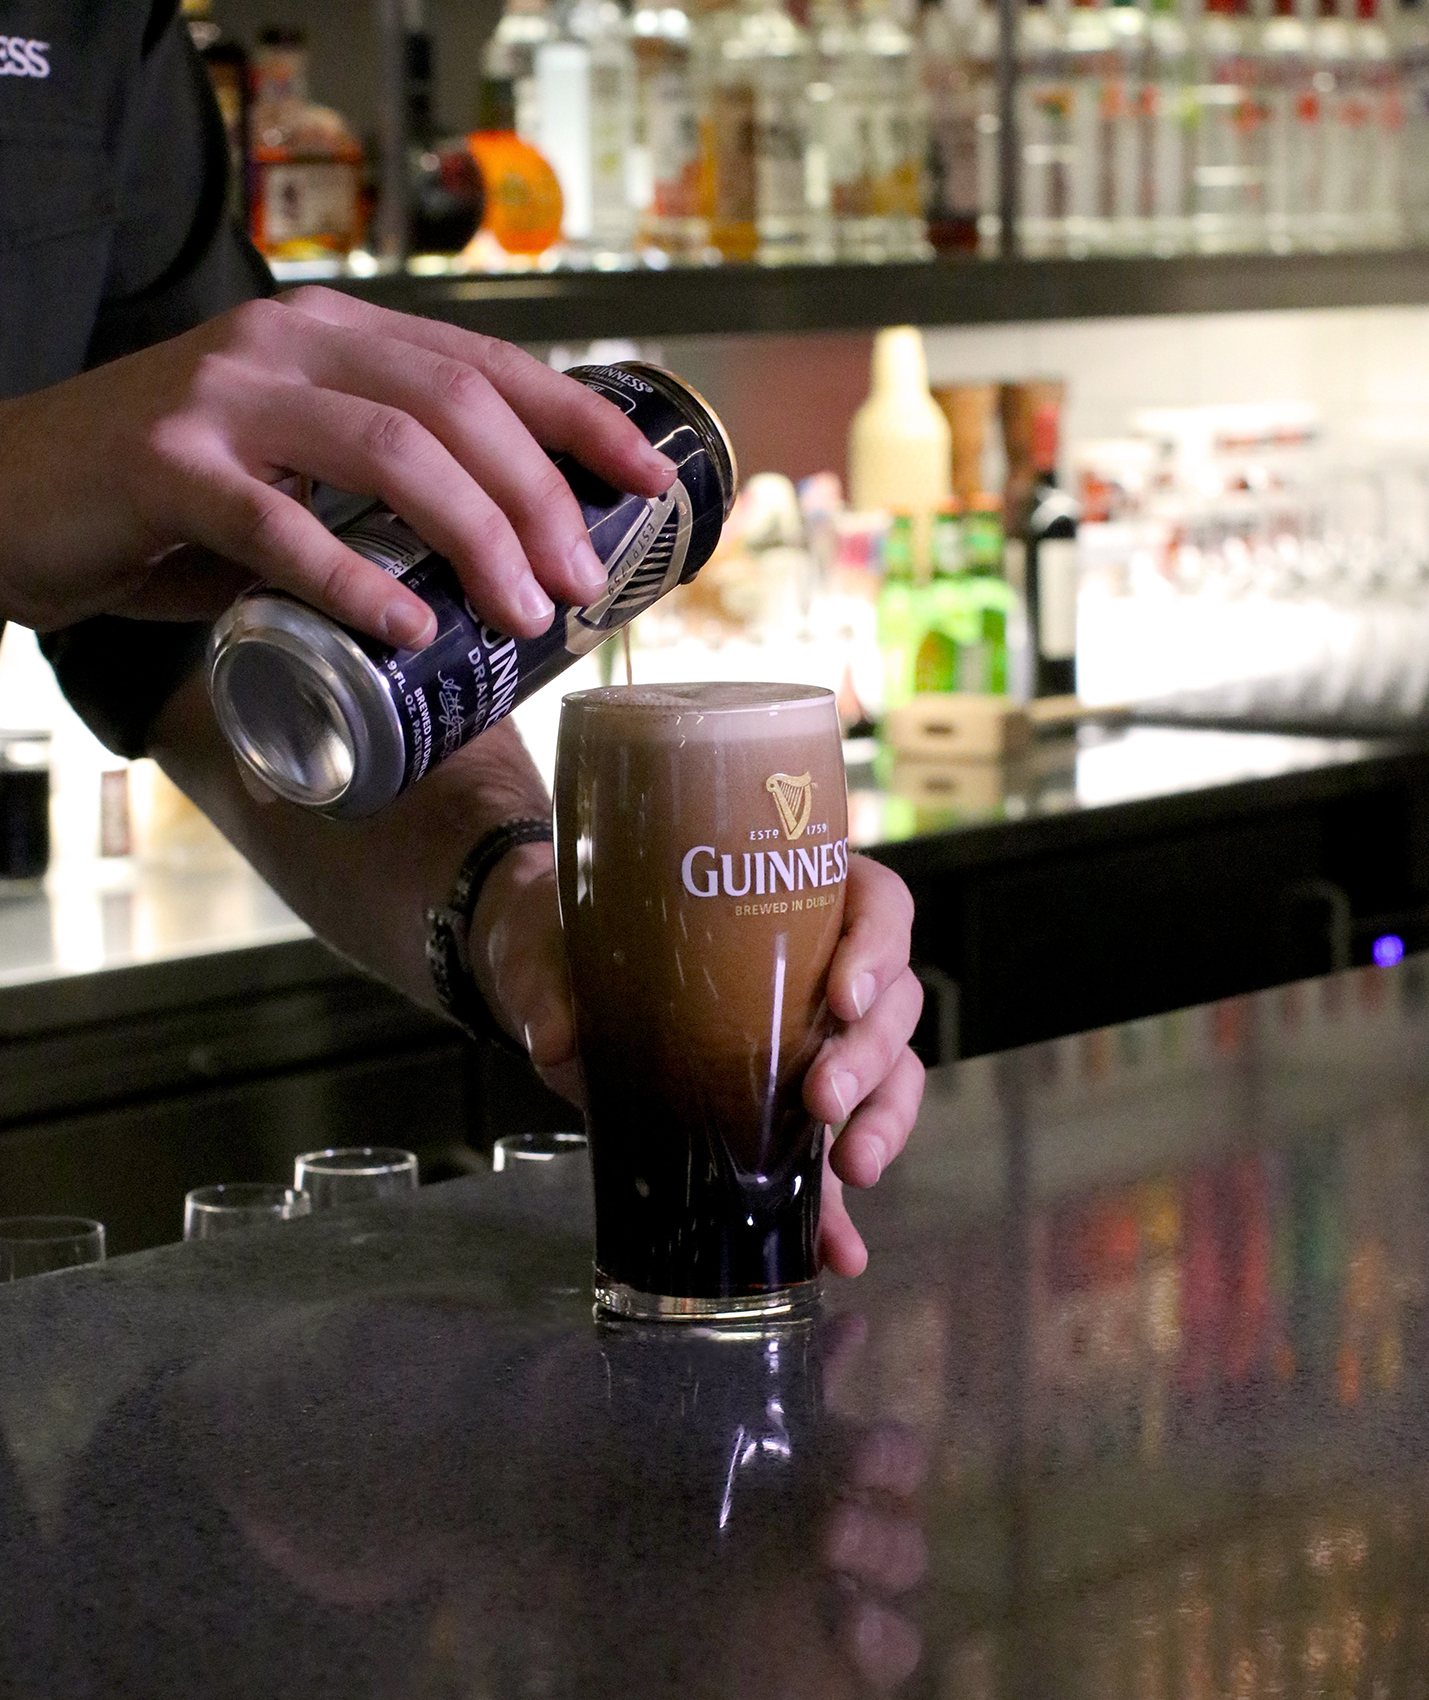 Guinness beer pour